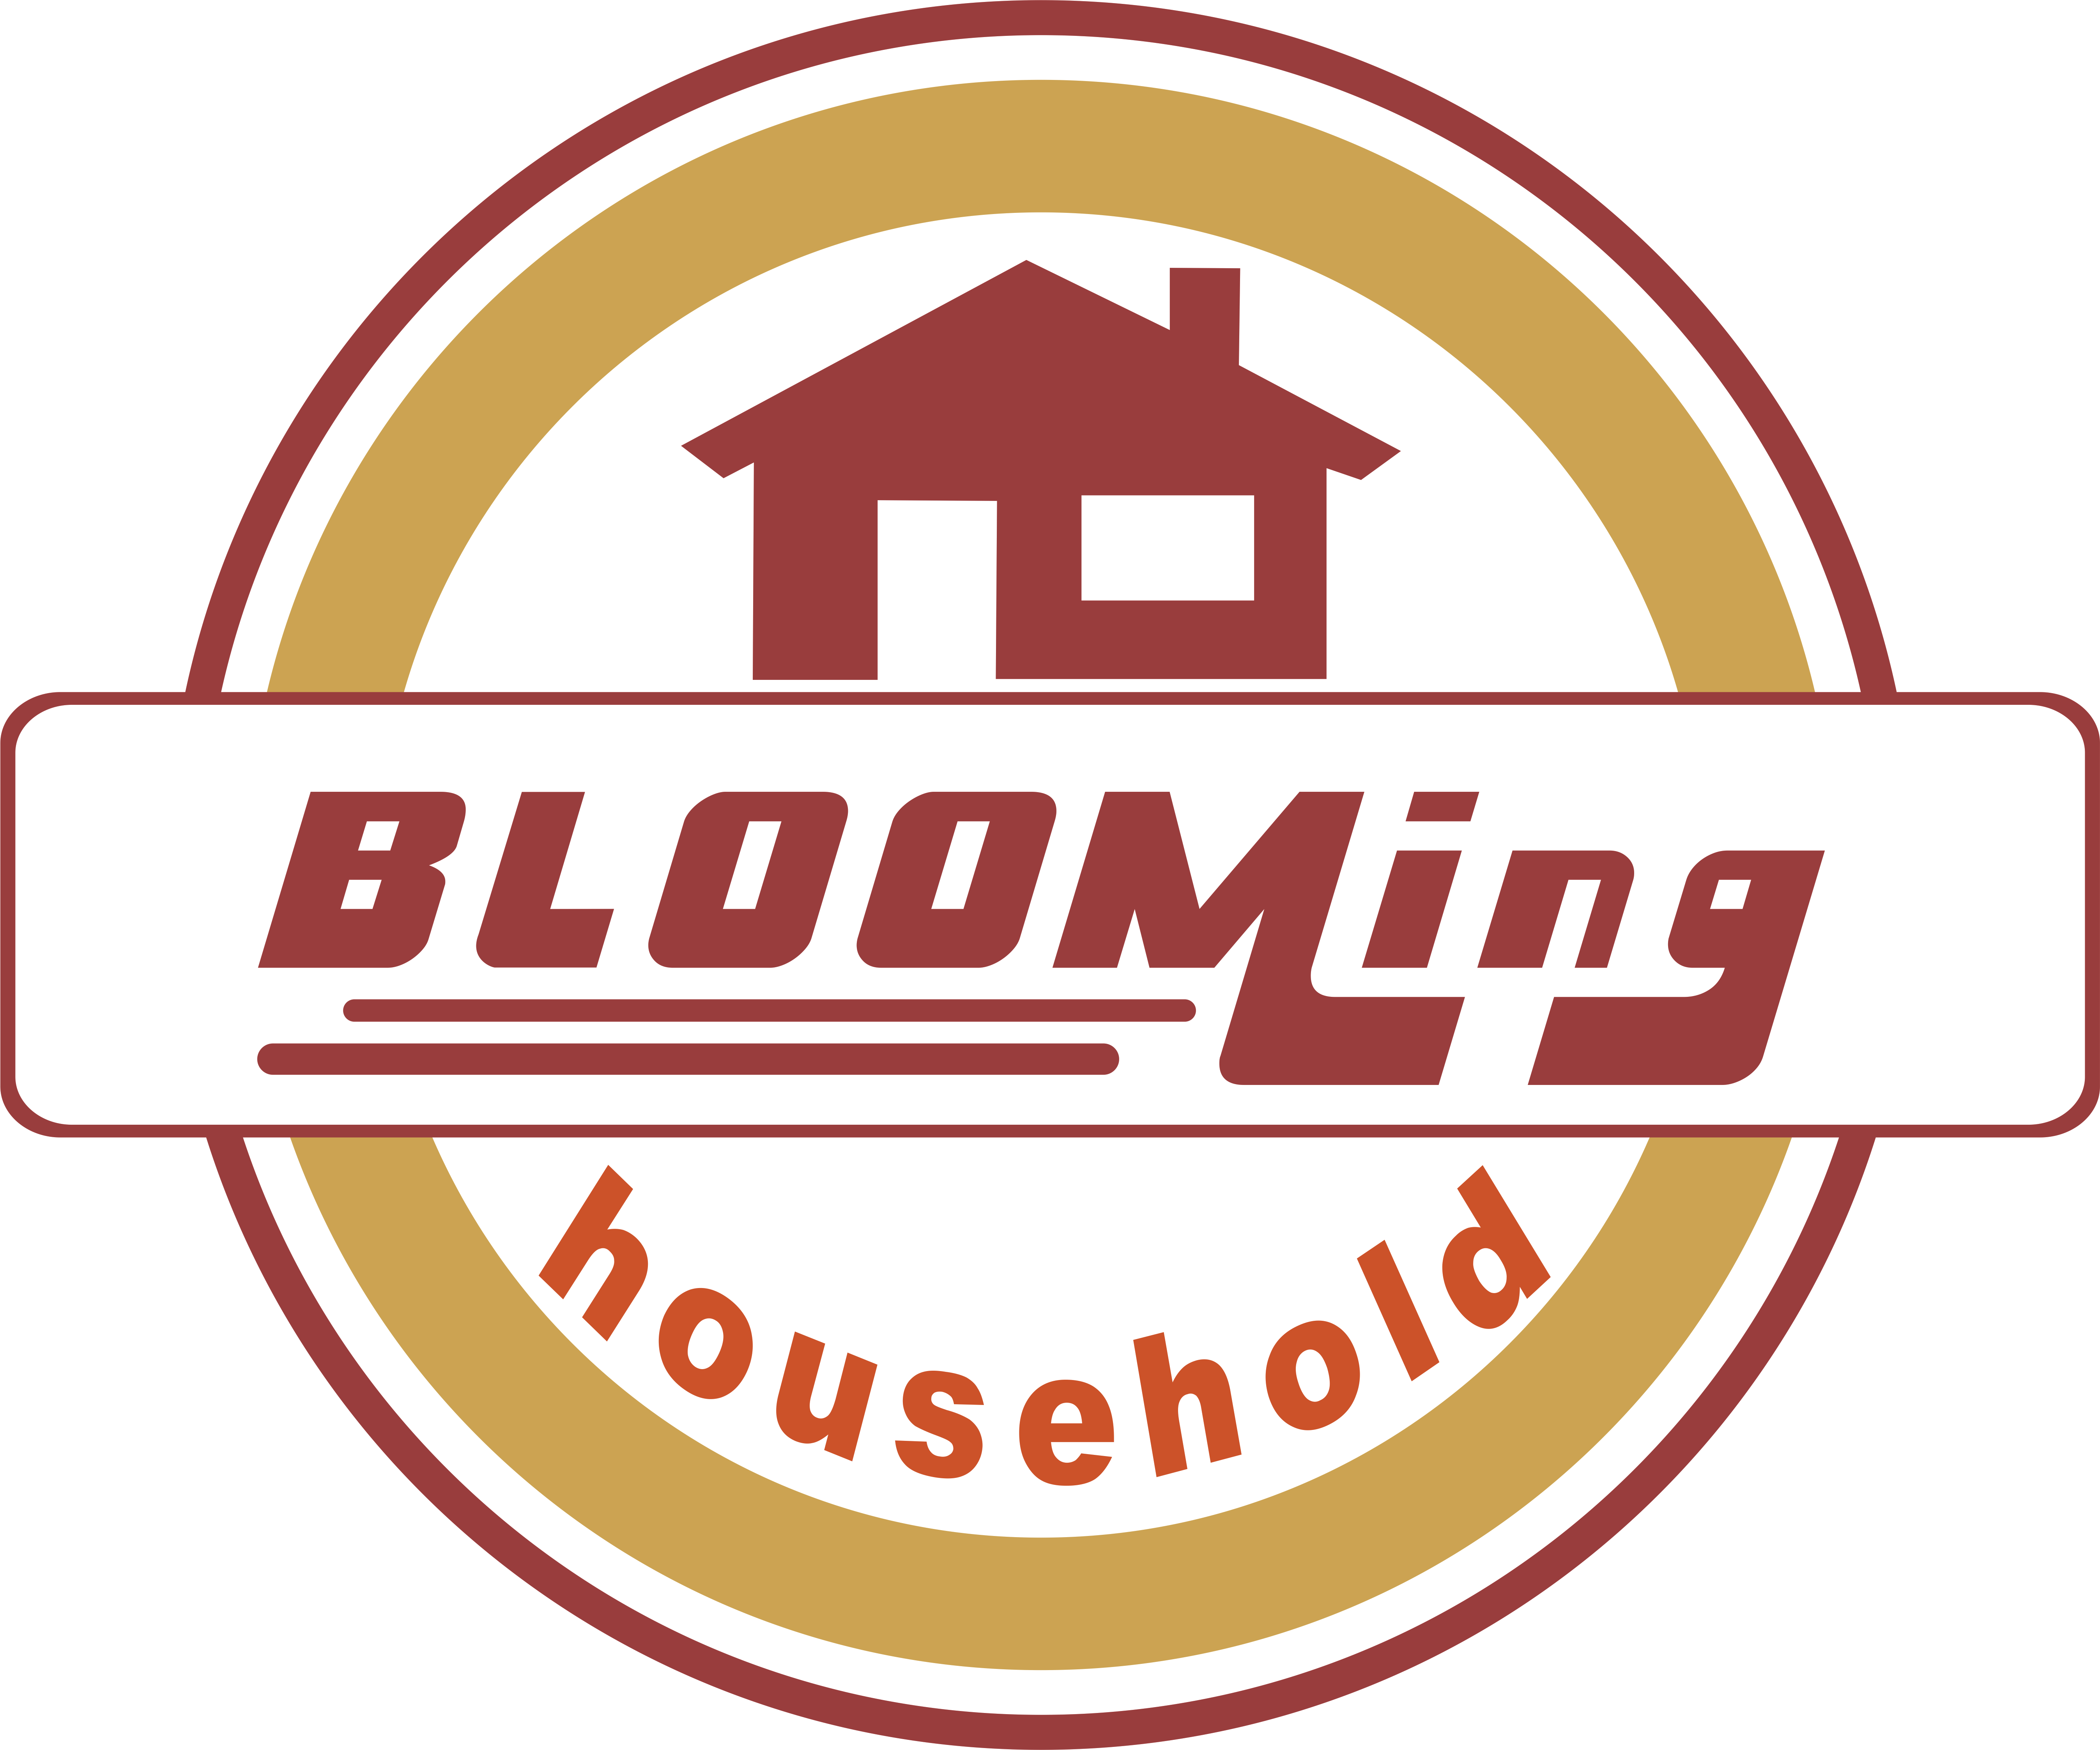 SHANDONG EVERBLOOMING GLASS CO.,LTD